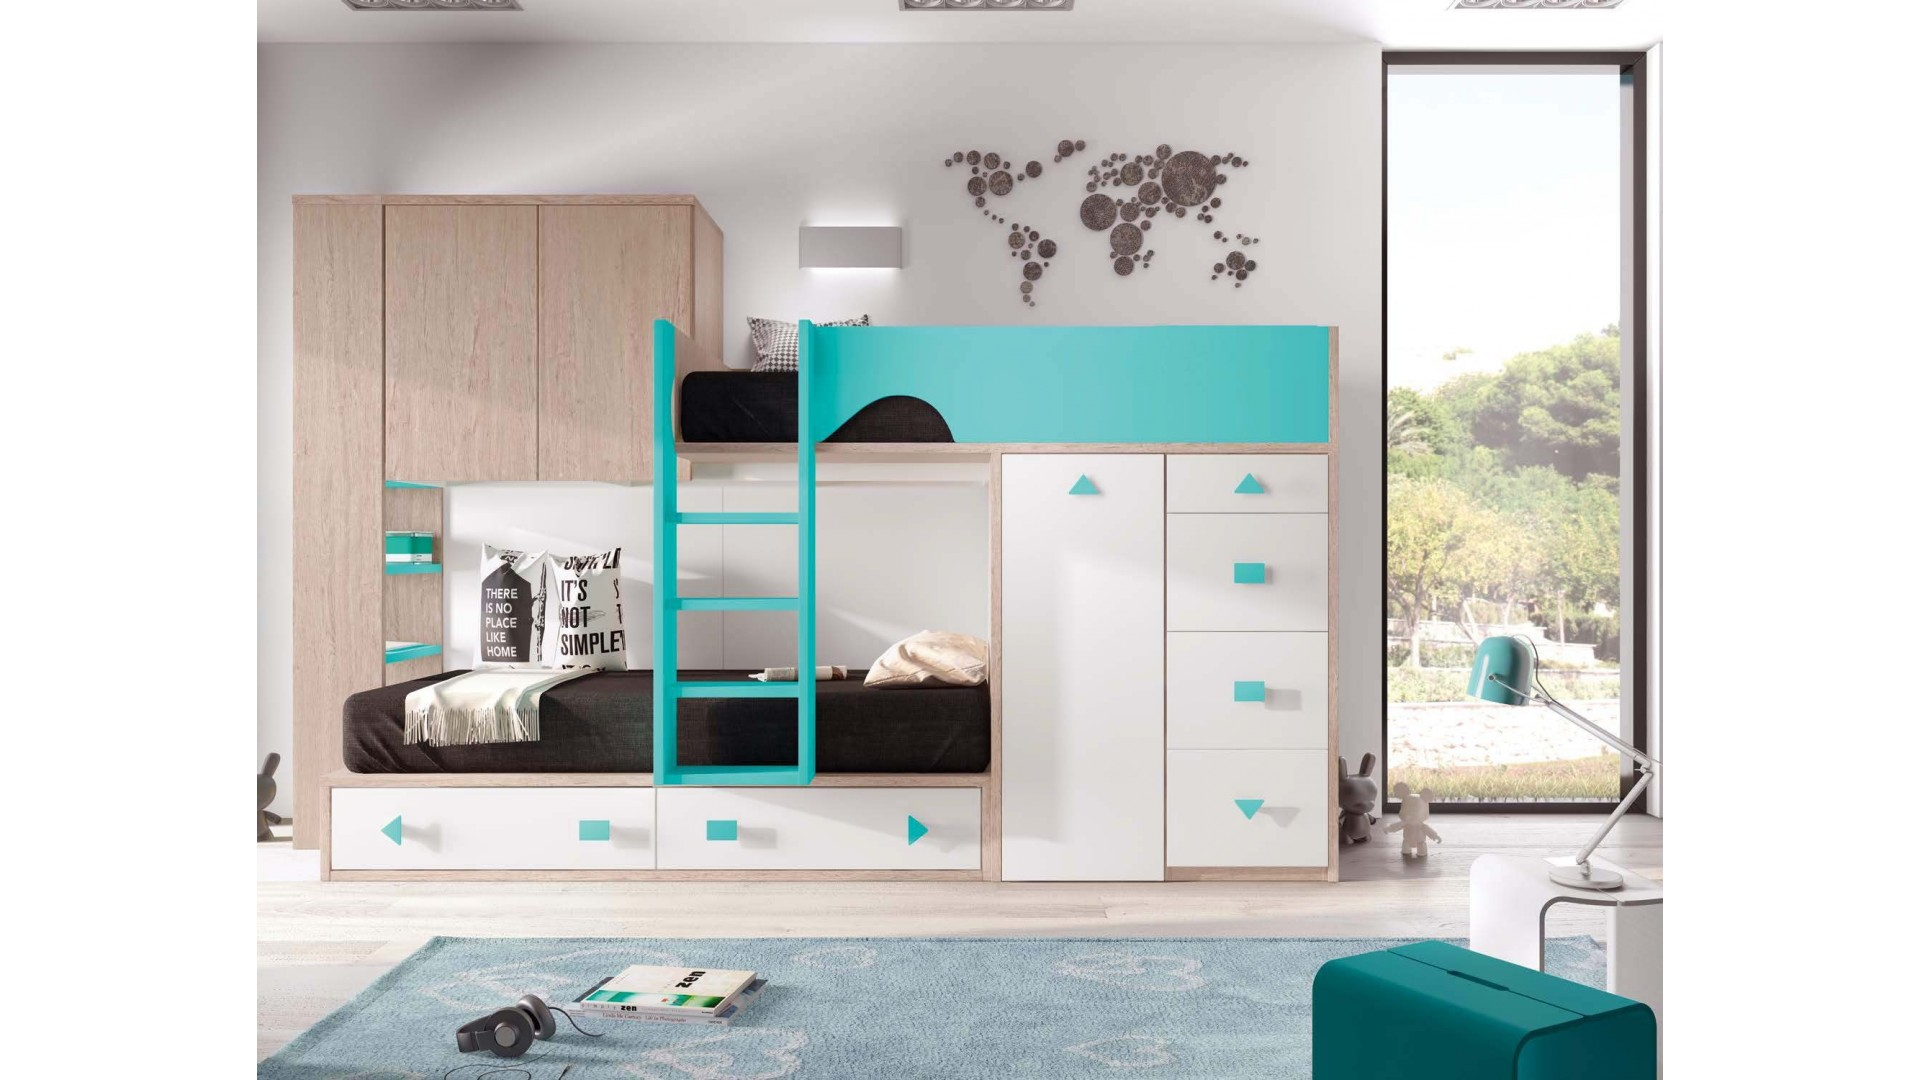 lit superpos gar on ultra compact et pratique glicerio so nuit. Black Bedroom Furniture Sets. Home Design Ideas